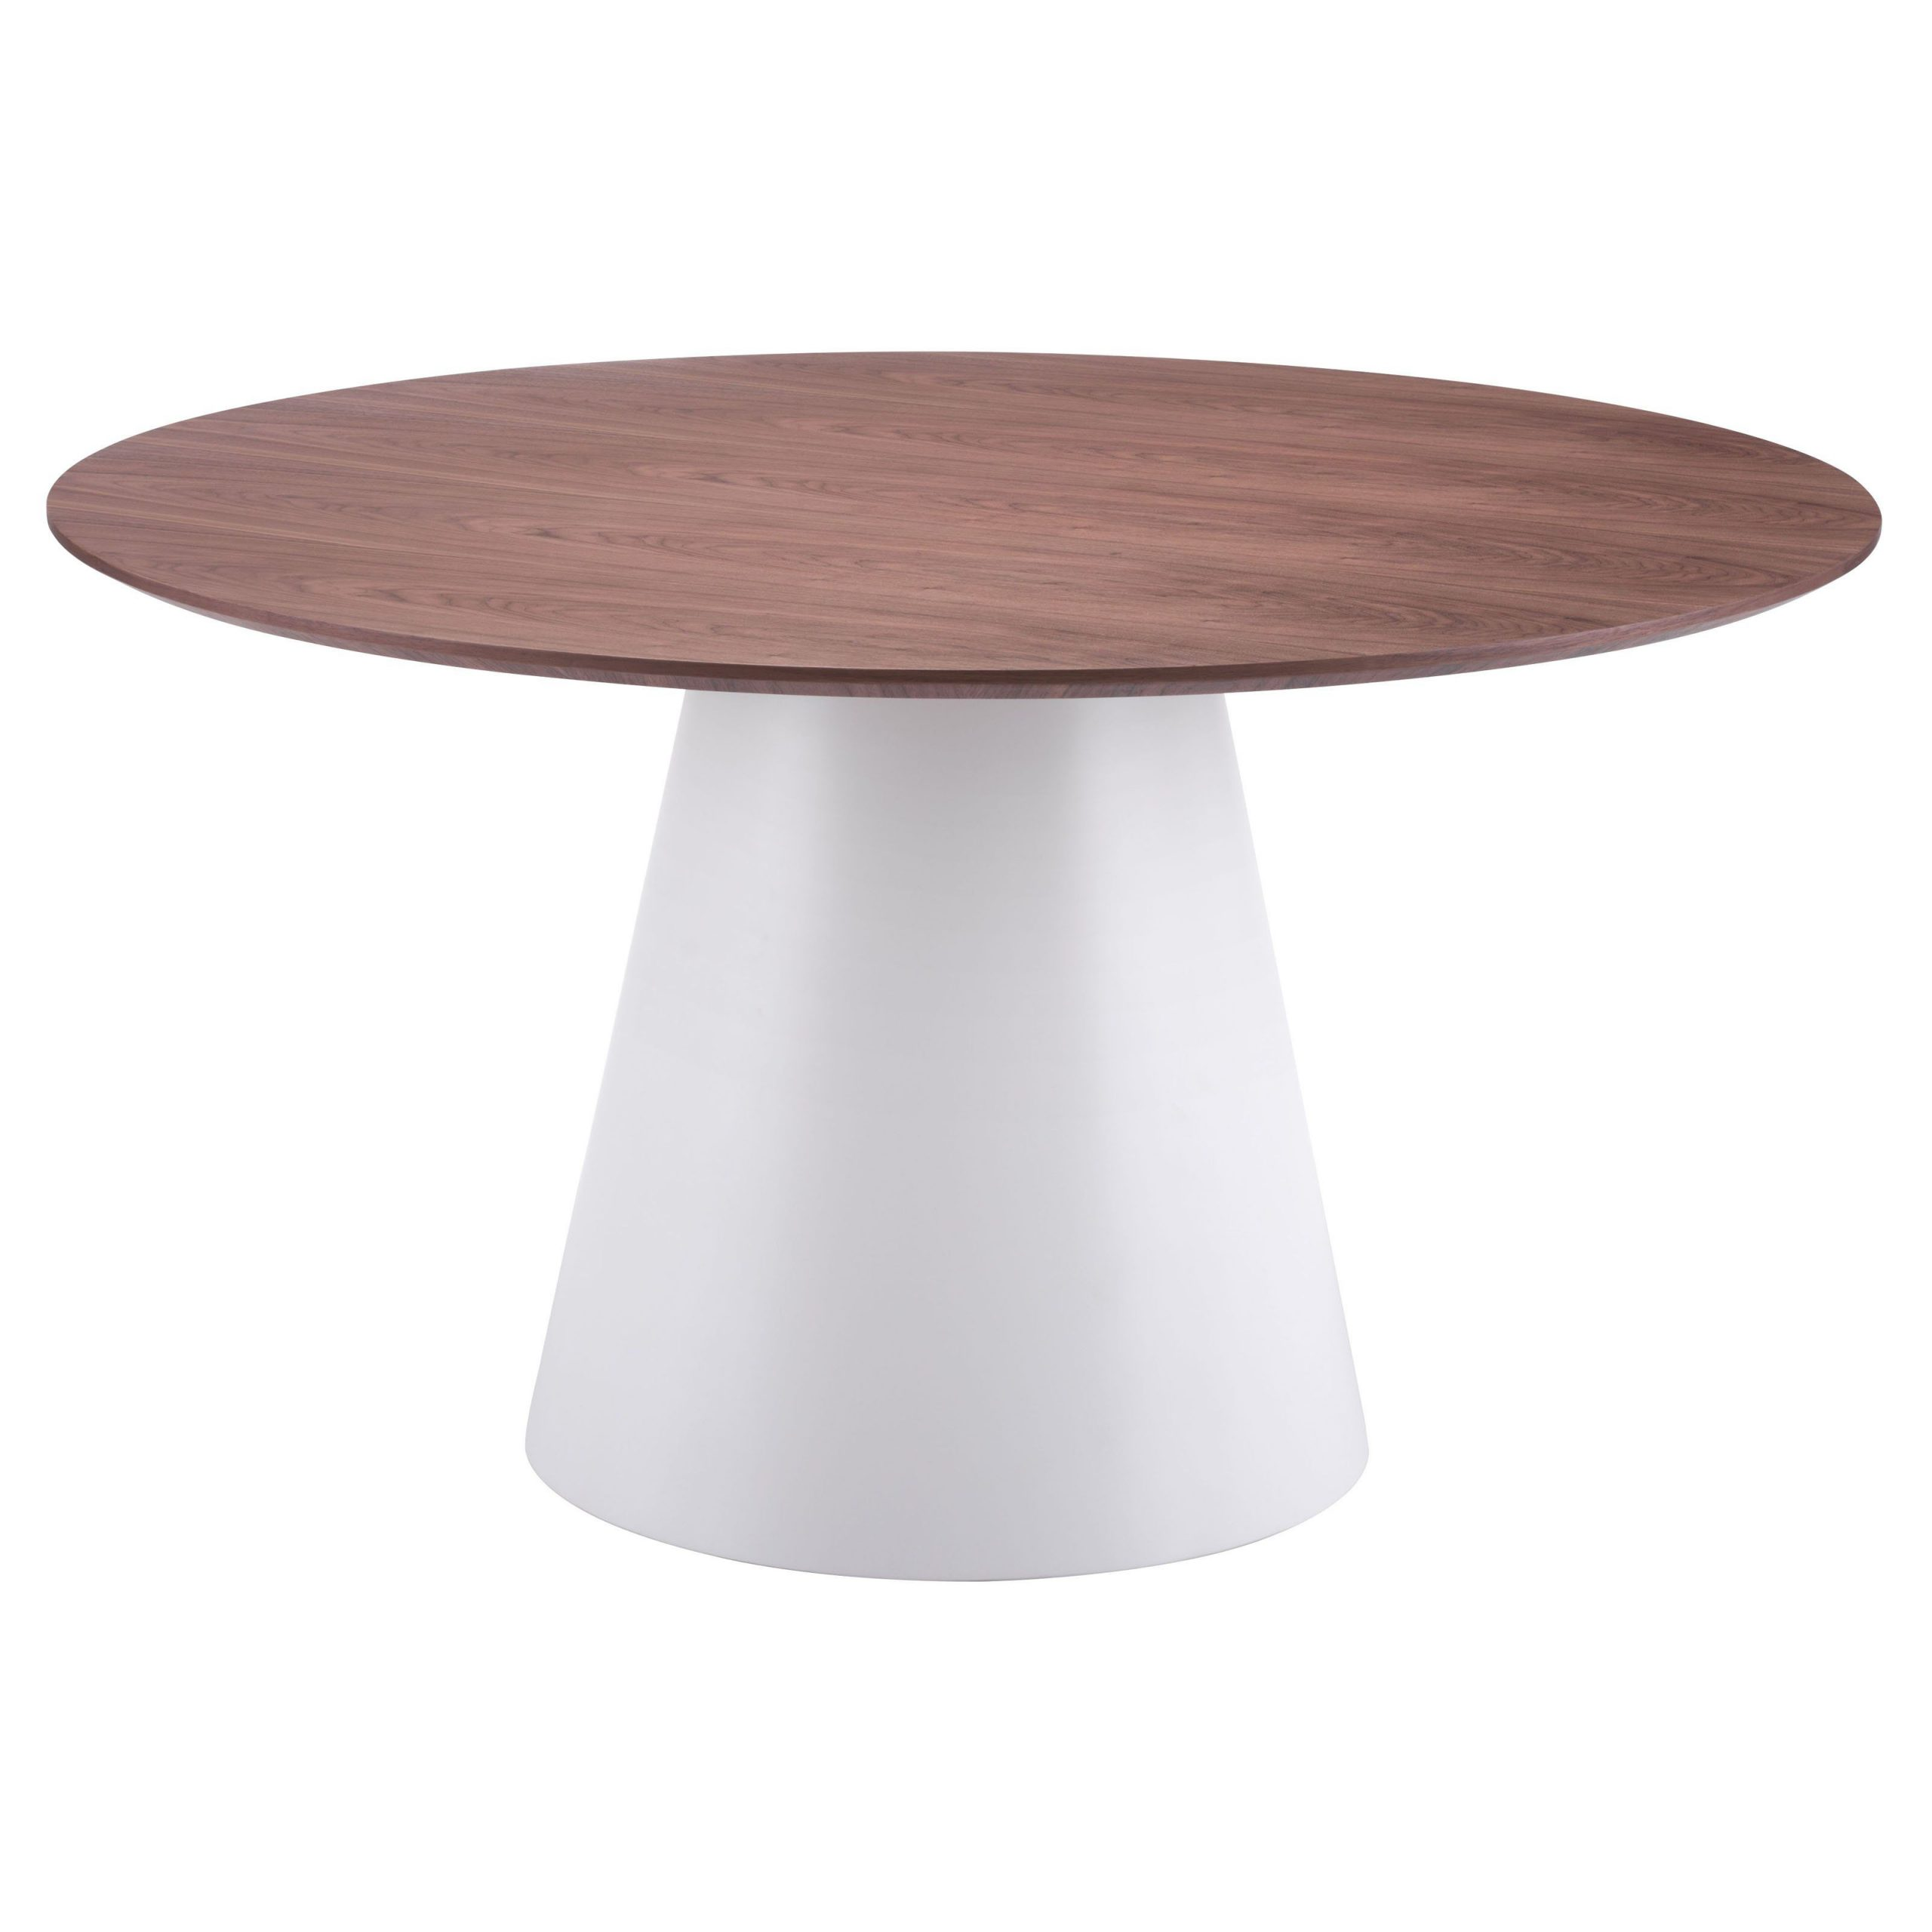 Zuo Modern Query Dining Table – 100271 In 2019 | Dining In Most Recently Released Warner Round Pedestal Dining Tables (View 8 of 25)